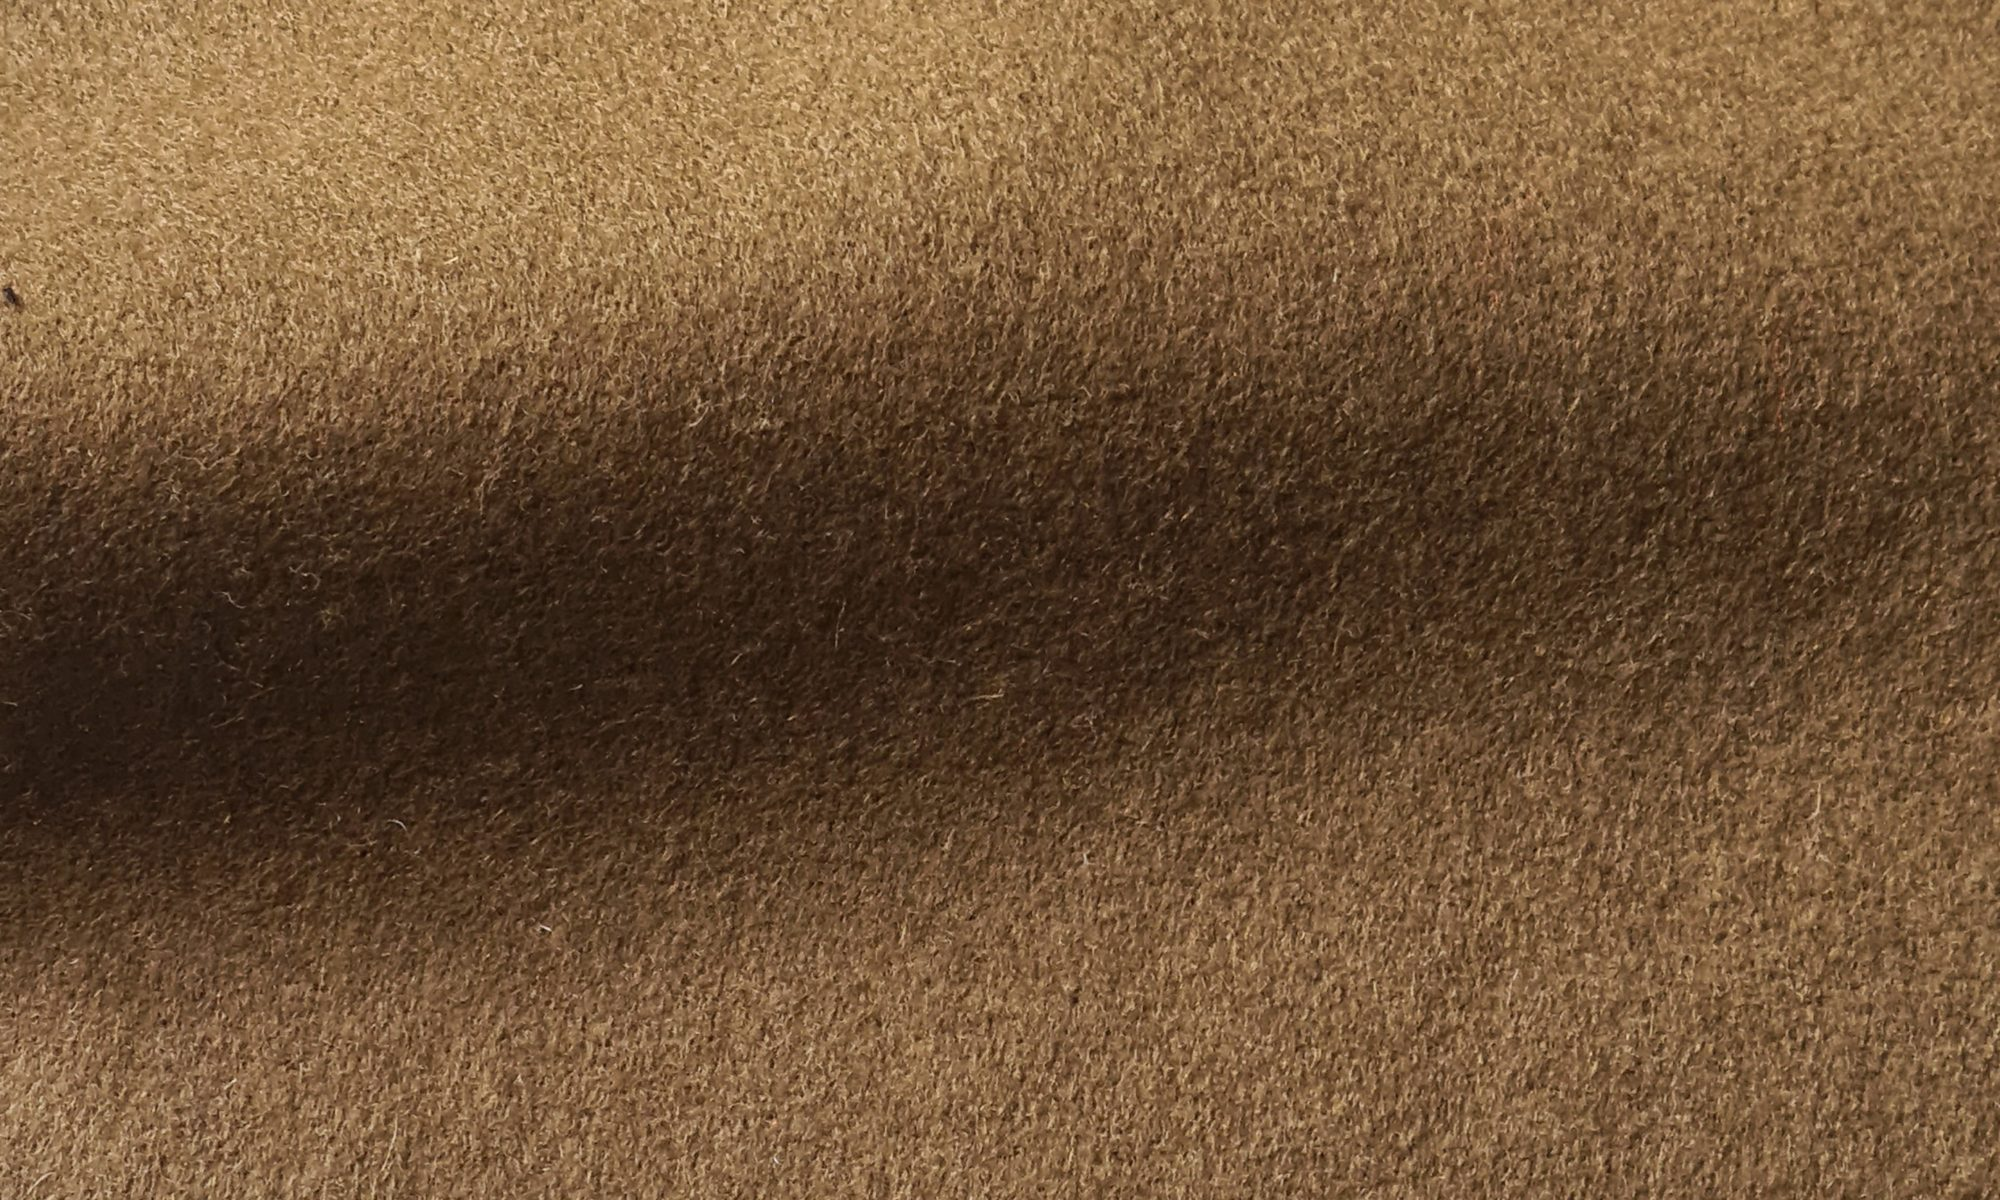 7588 brown coat fabric WIDTH cm145 WEIGHT gr530 - gr365 square meter - COMPOSITION 65 wool 30 cashmere 5 polyammide - 700mts